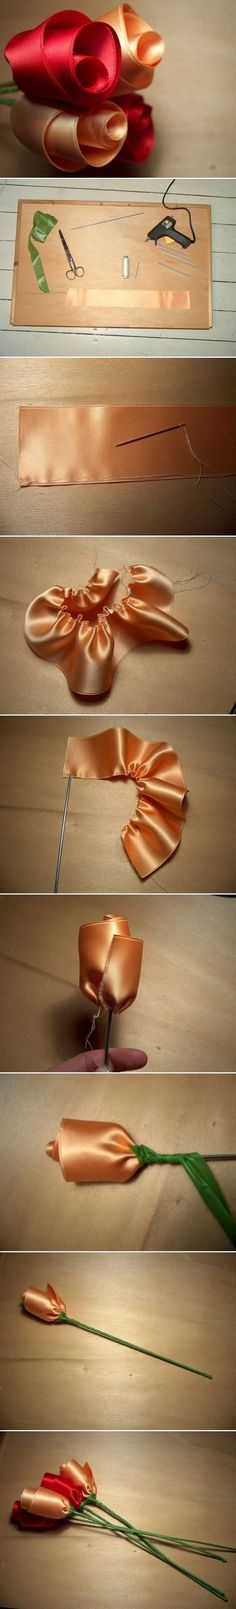 DIY Quick Satin Ribbon Roses --I made my wedding bouquet & bridesmaids flowers out of these, using material from my gown that I made & their dresses, too--back in 1974 --no patterns then, I made my own!